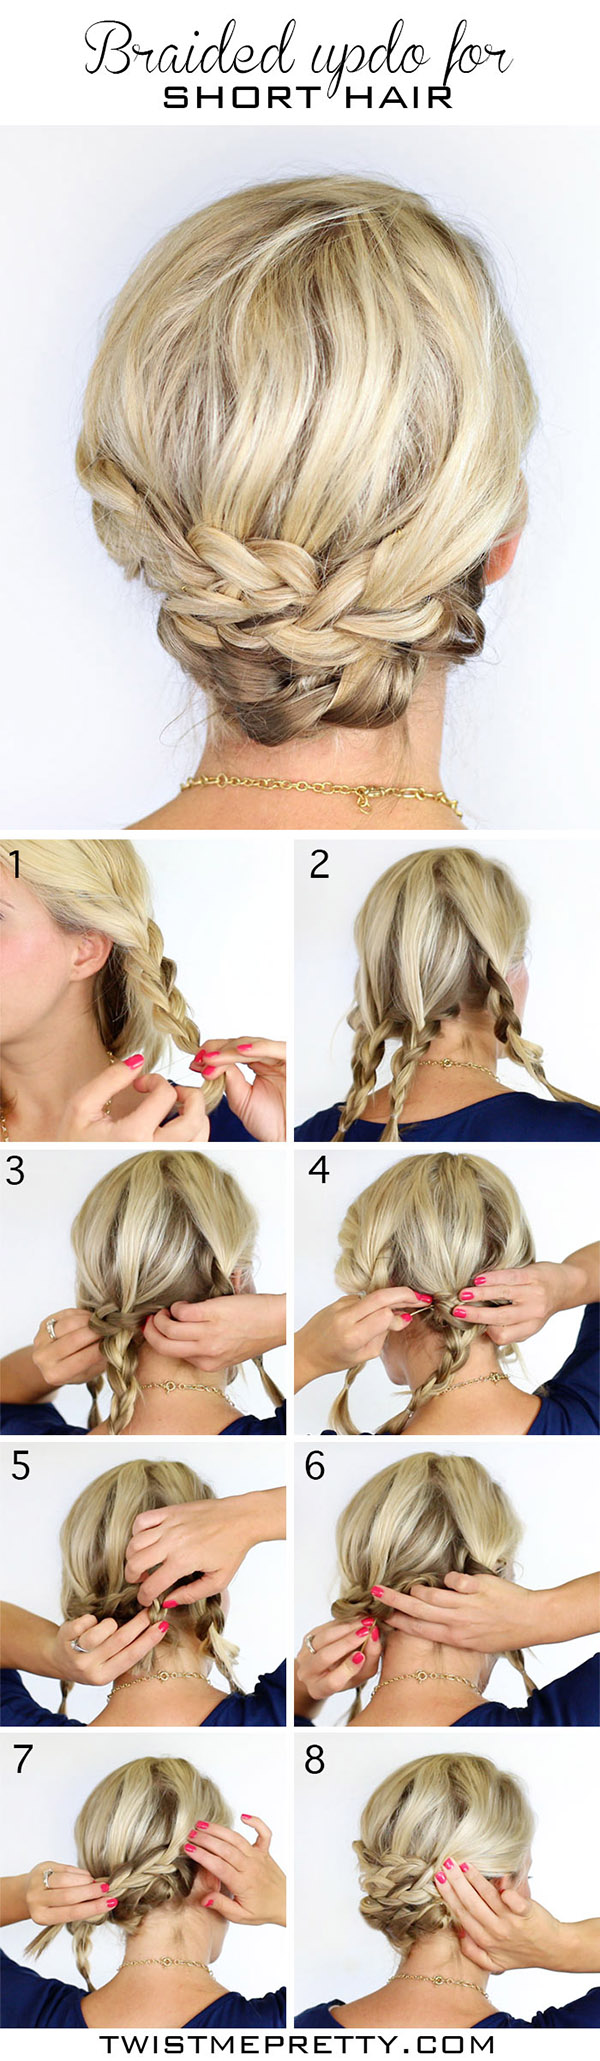 20 DIY Wedding Hairstyles with Tutorials to Try on Your Own ...